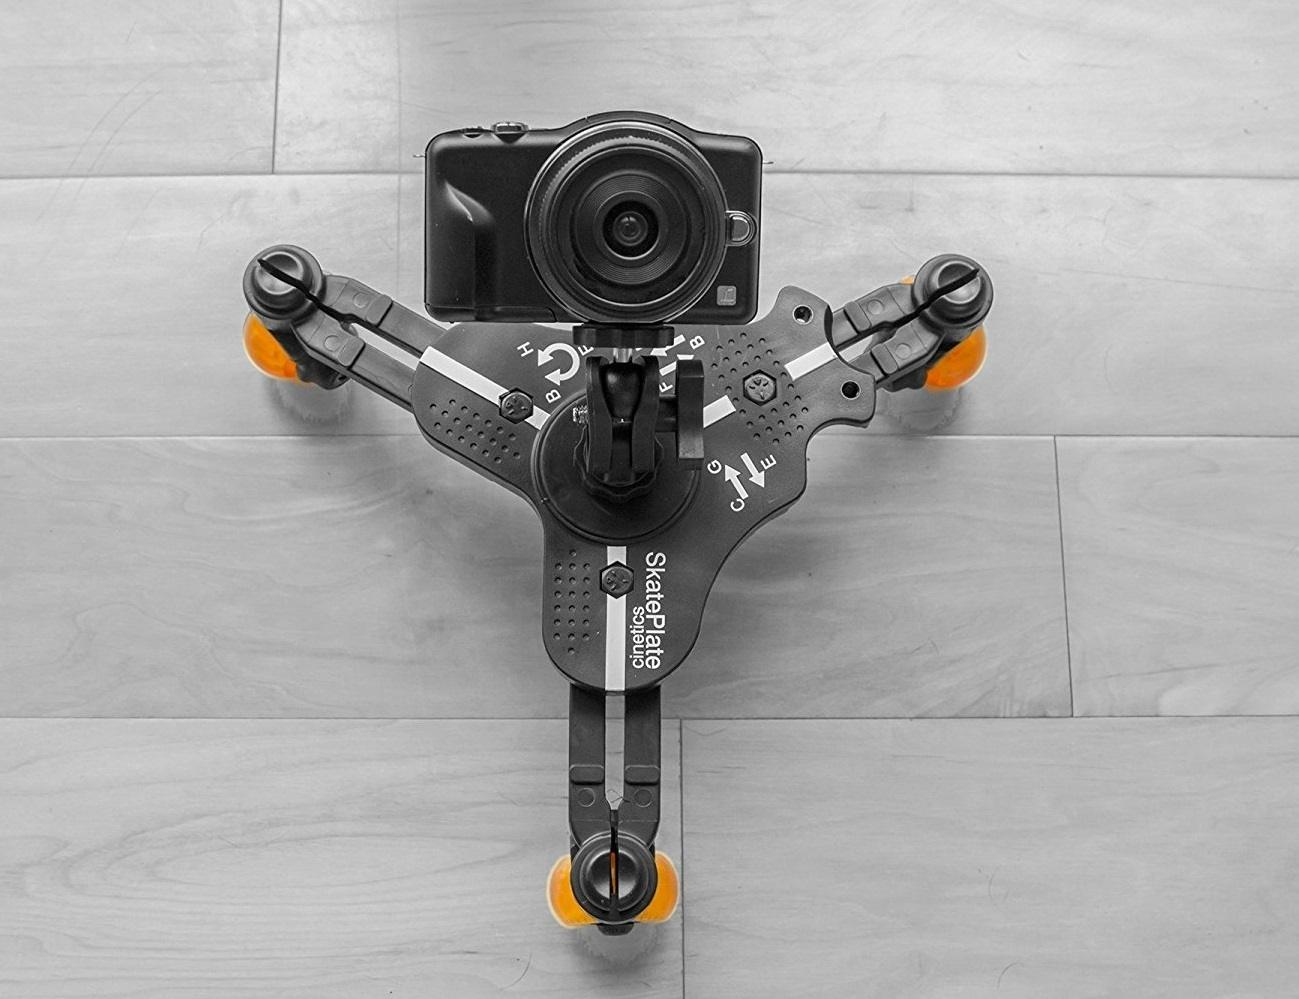 Miniskates – Three Wheels for Fluid Camera Movement